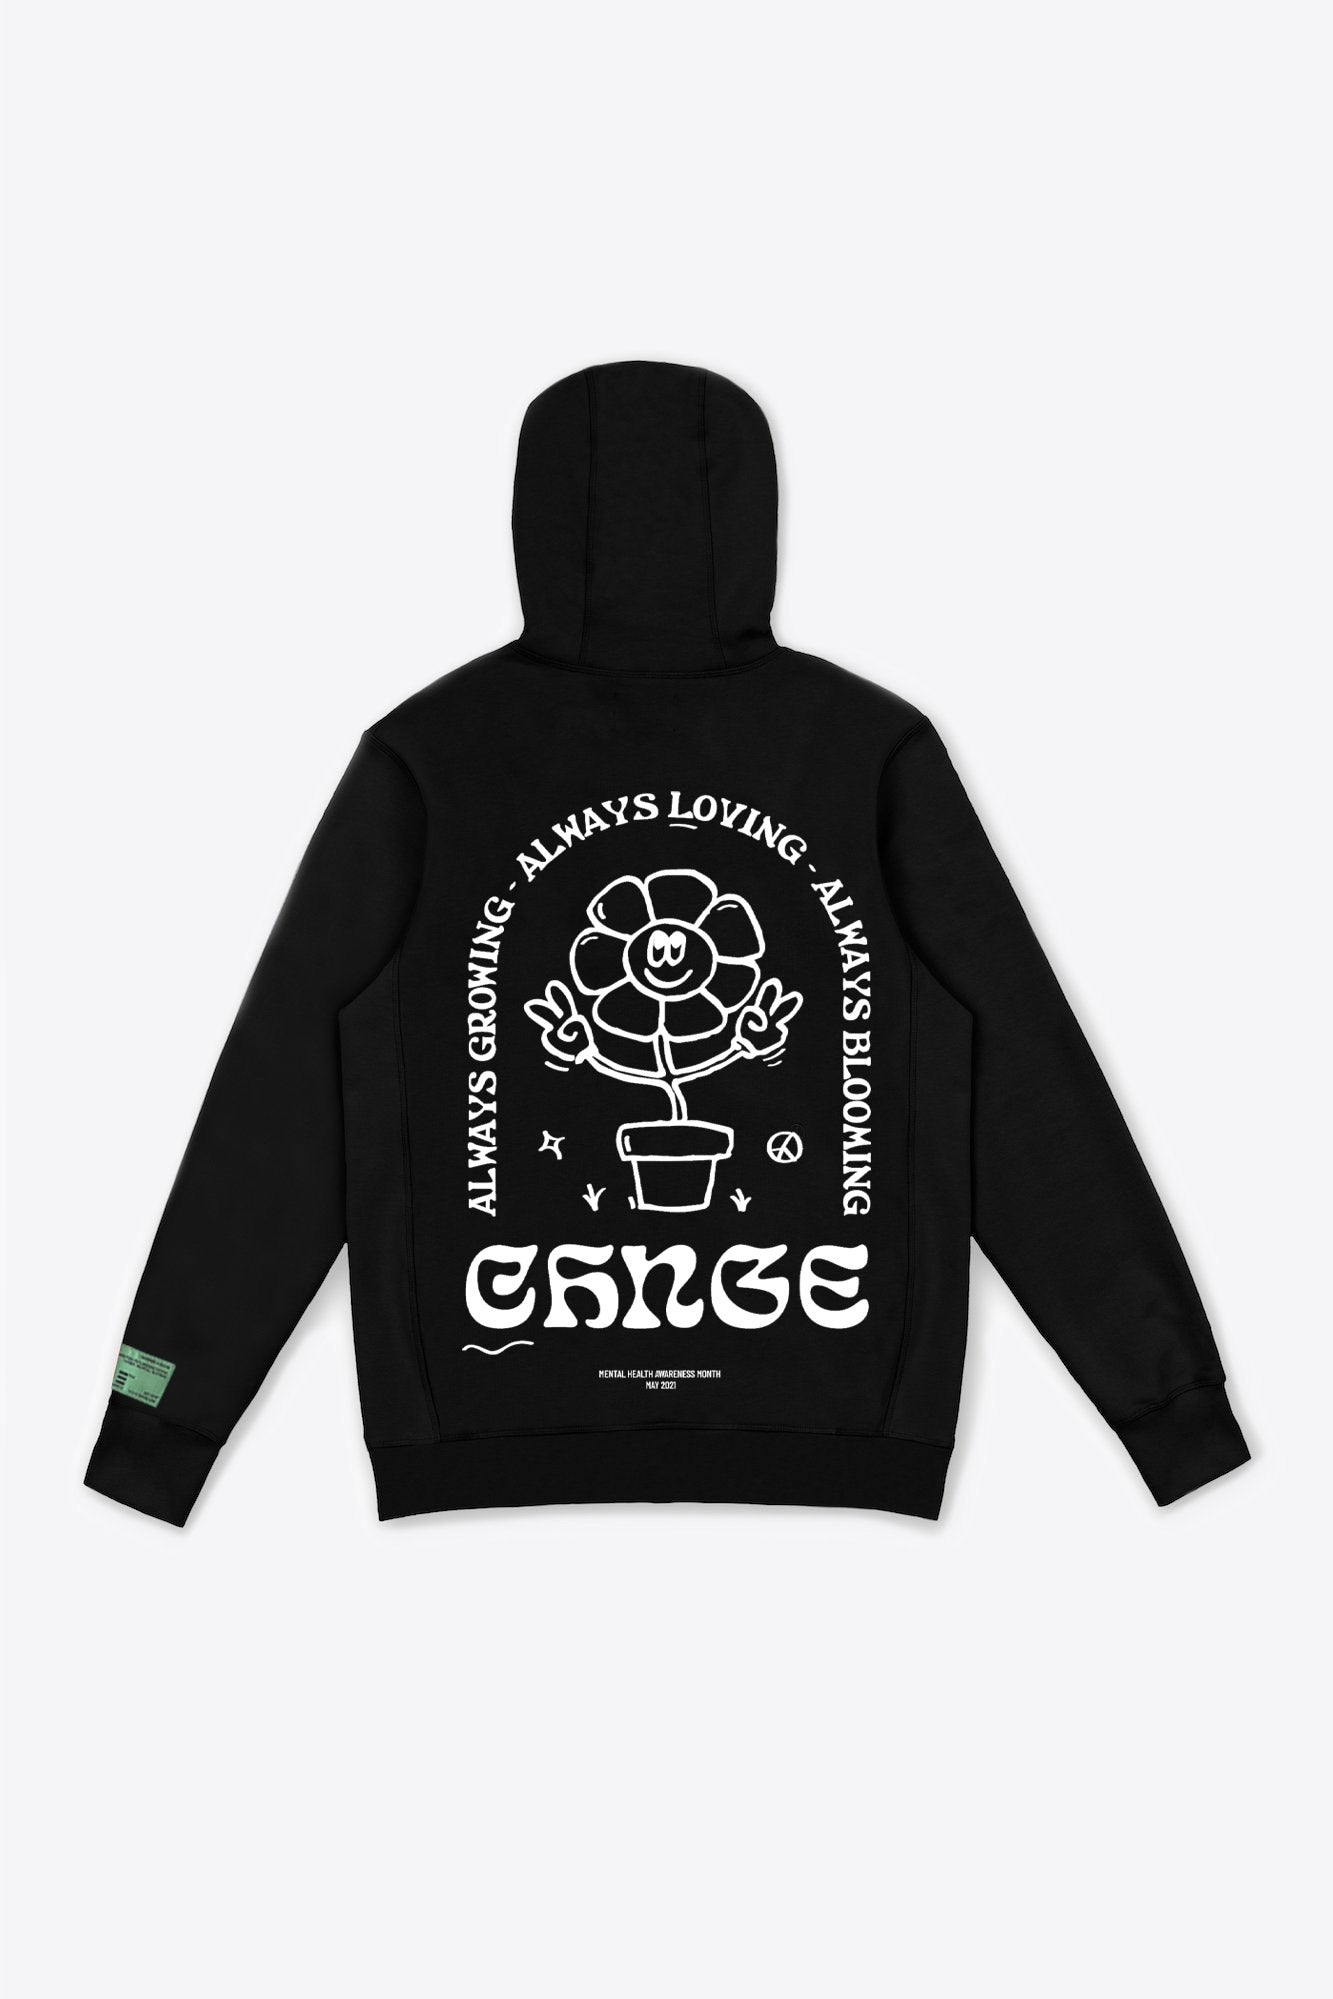 More Self Love Hoodie